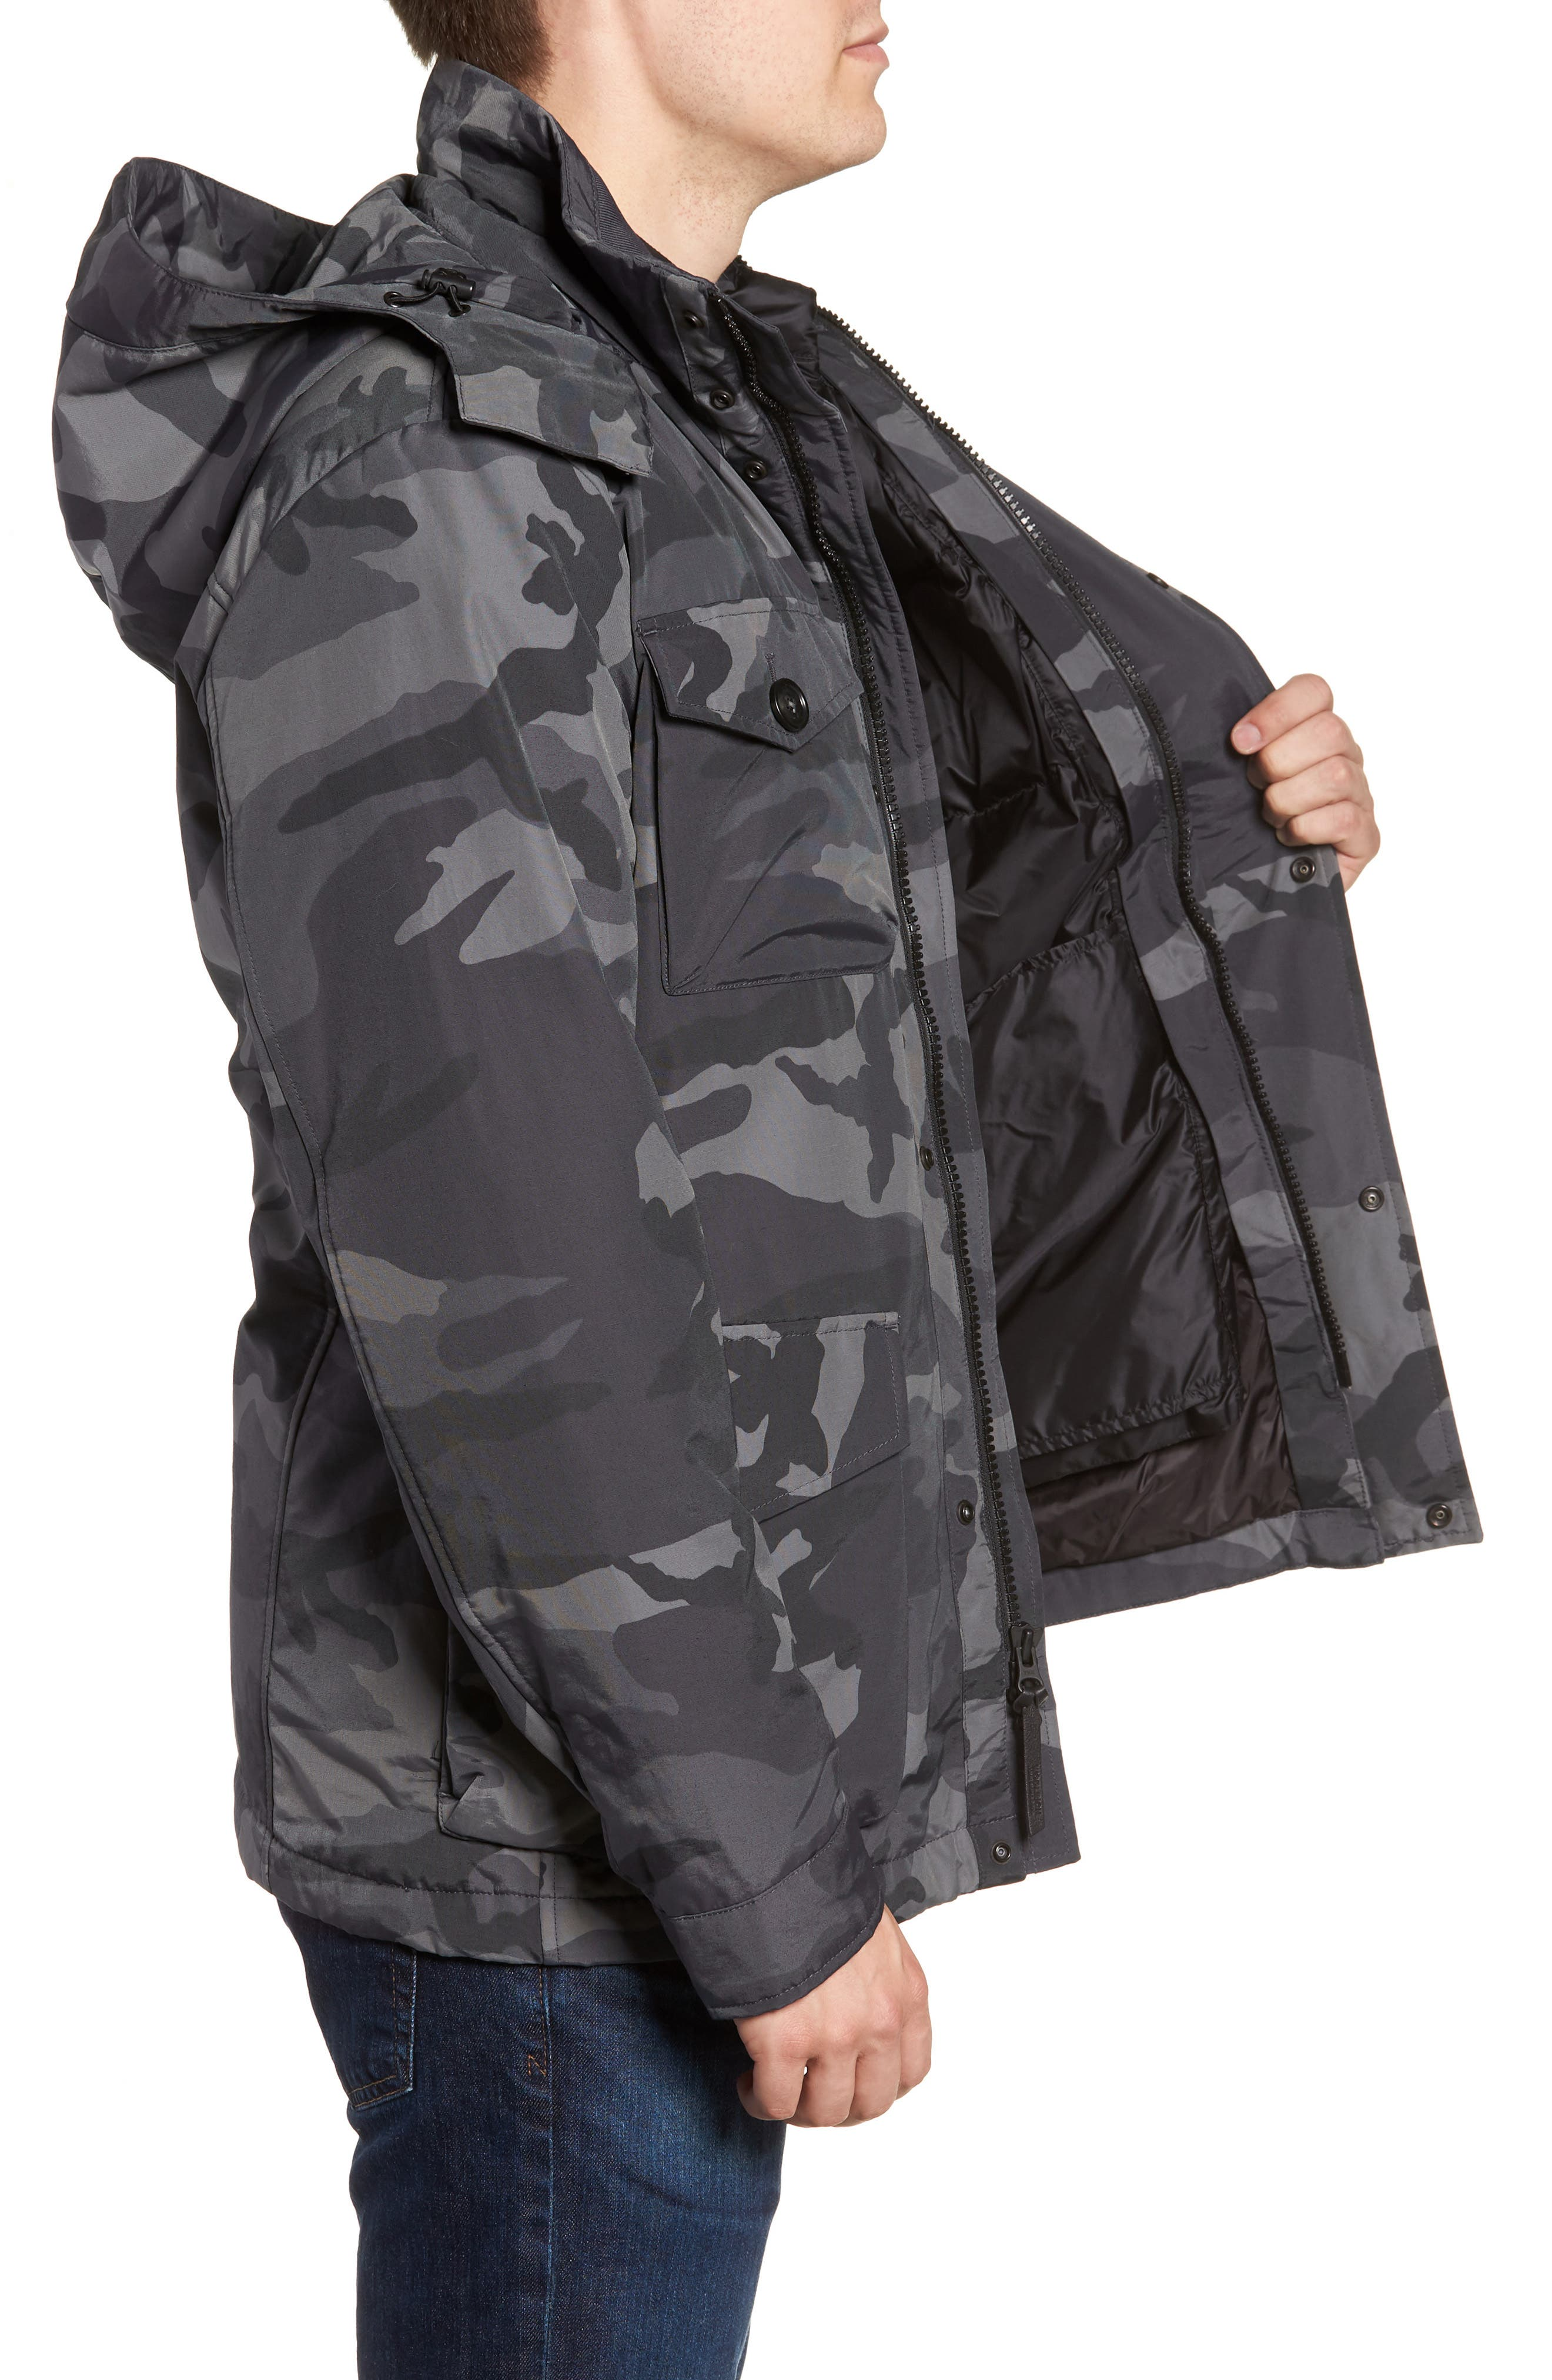 Camou Field Jacket,                             Alternate thumbnail 3, color,                             GREY CAMOU